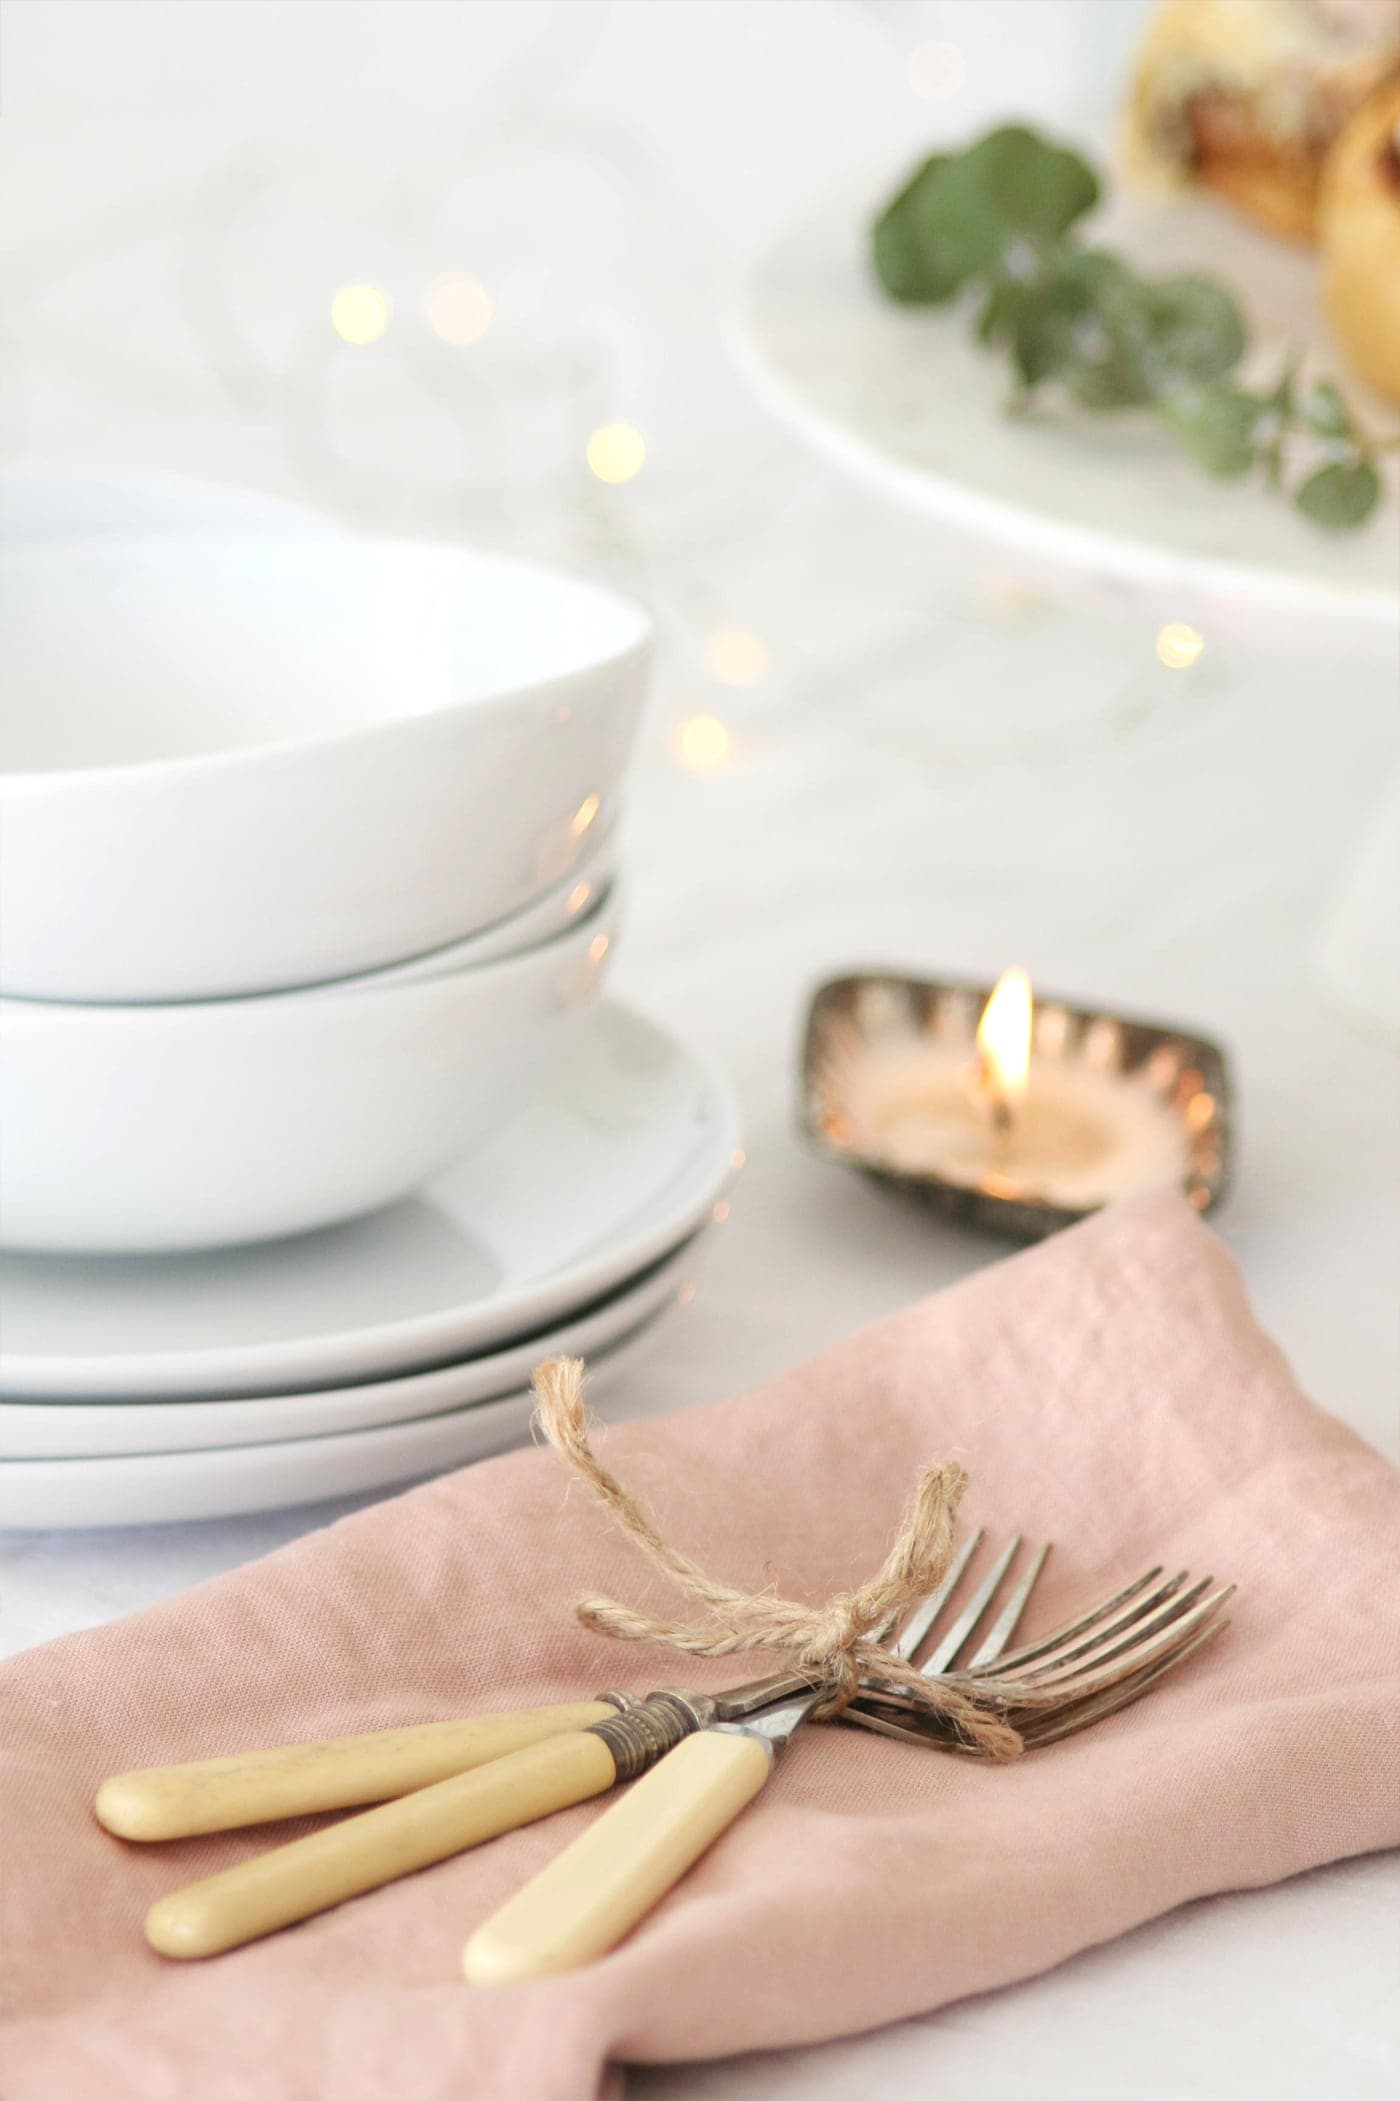 12 styled days of Christmas with West Elm | festive advent breakfast | apartment apothecary